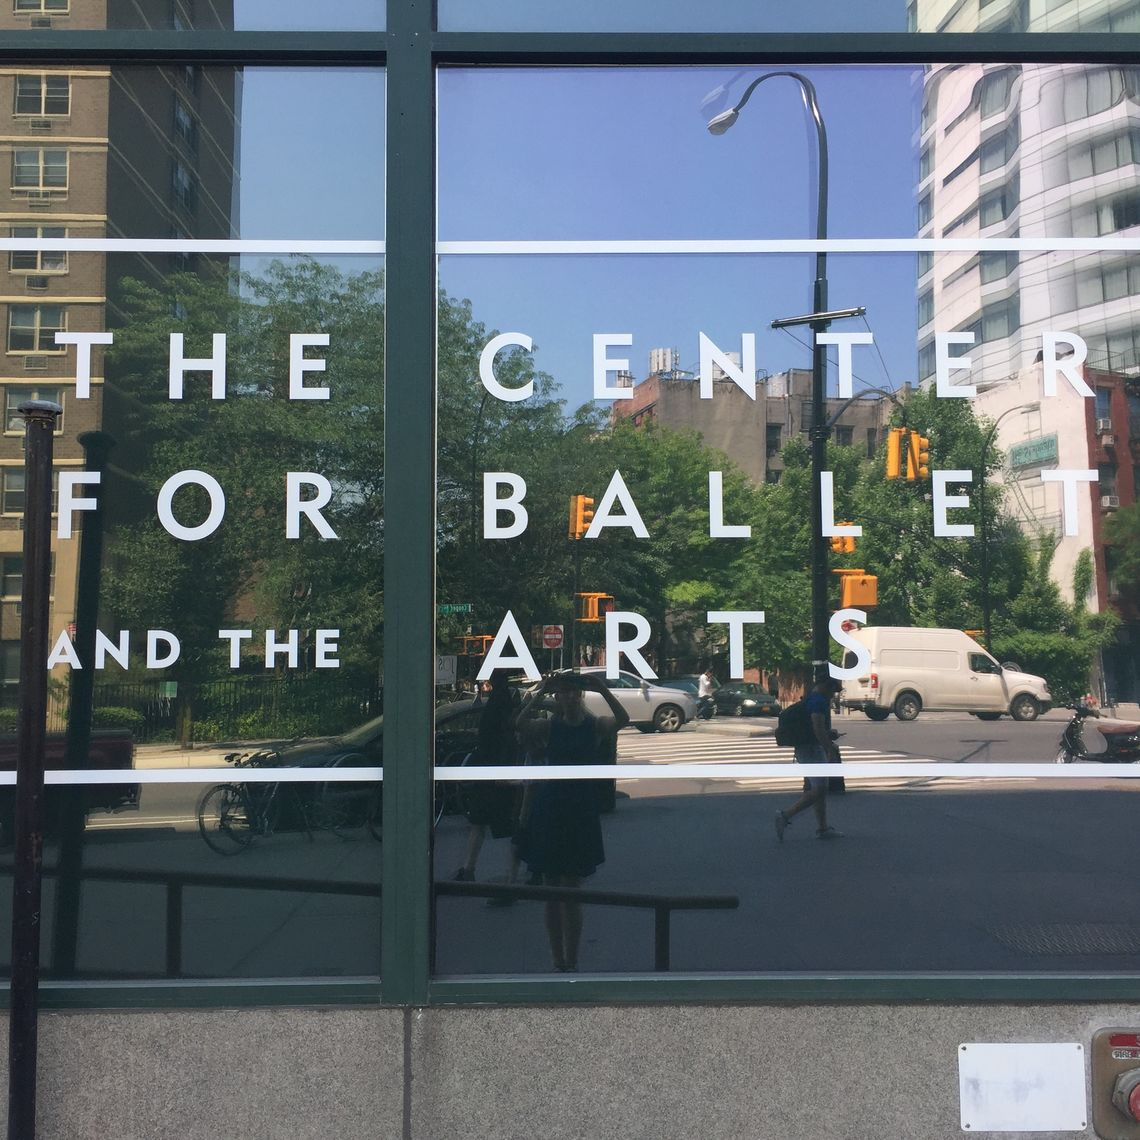 Entrance to the Center for Ballet and the Arts at New York University, where Sabrina currently works